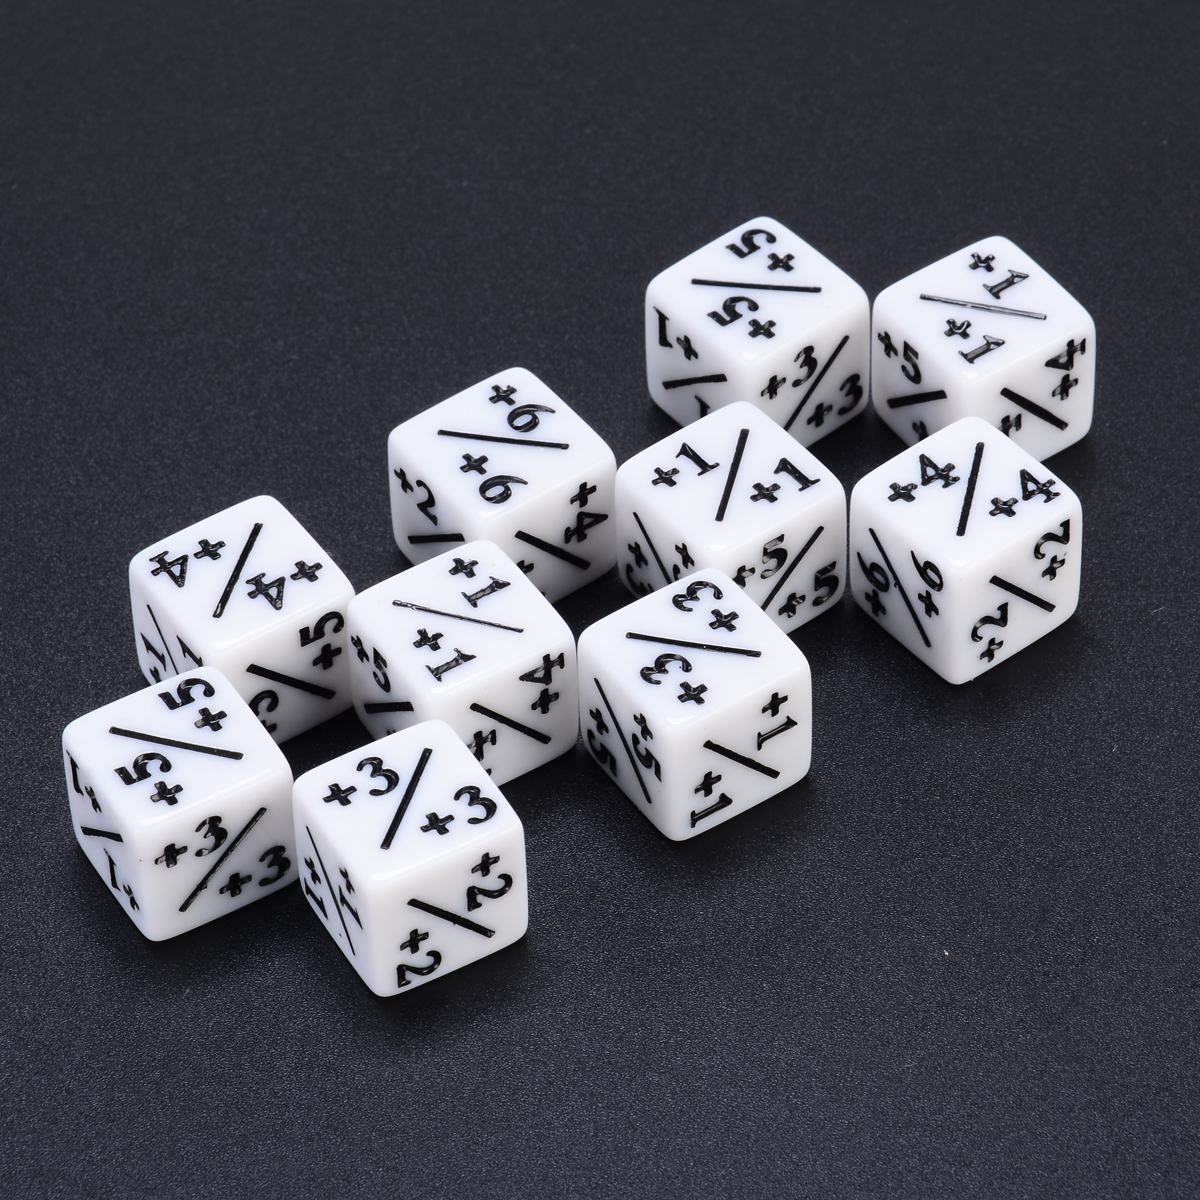 10pcs White Dice Counters +1/+1 For Magic The Gathering & MTG Games Poker Party Bar Gambling Board Desktop Funny Outdoor Dice